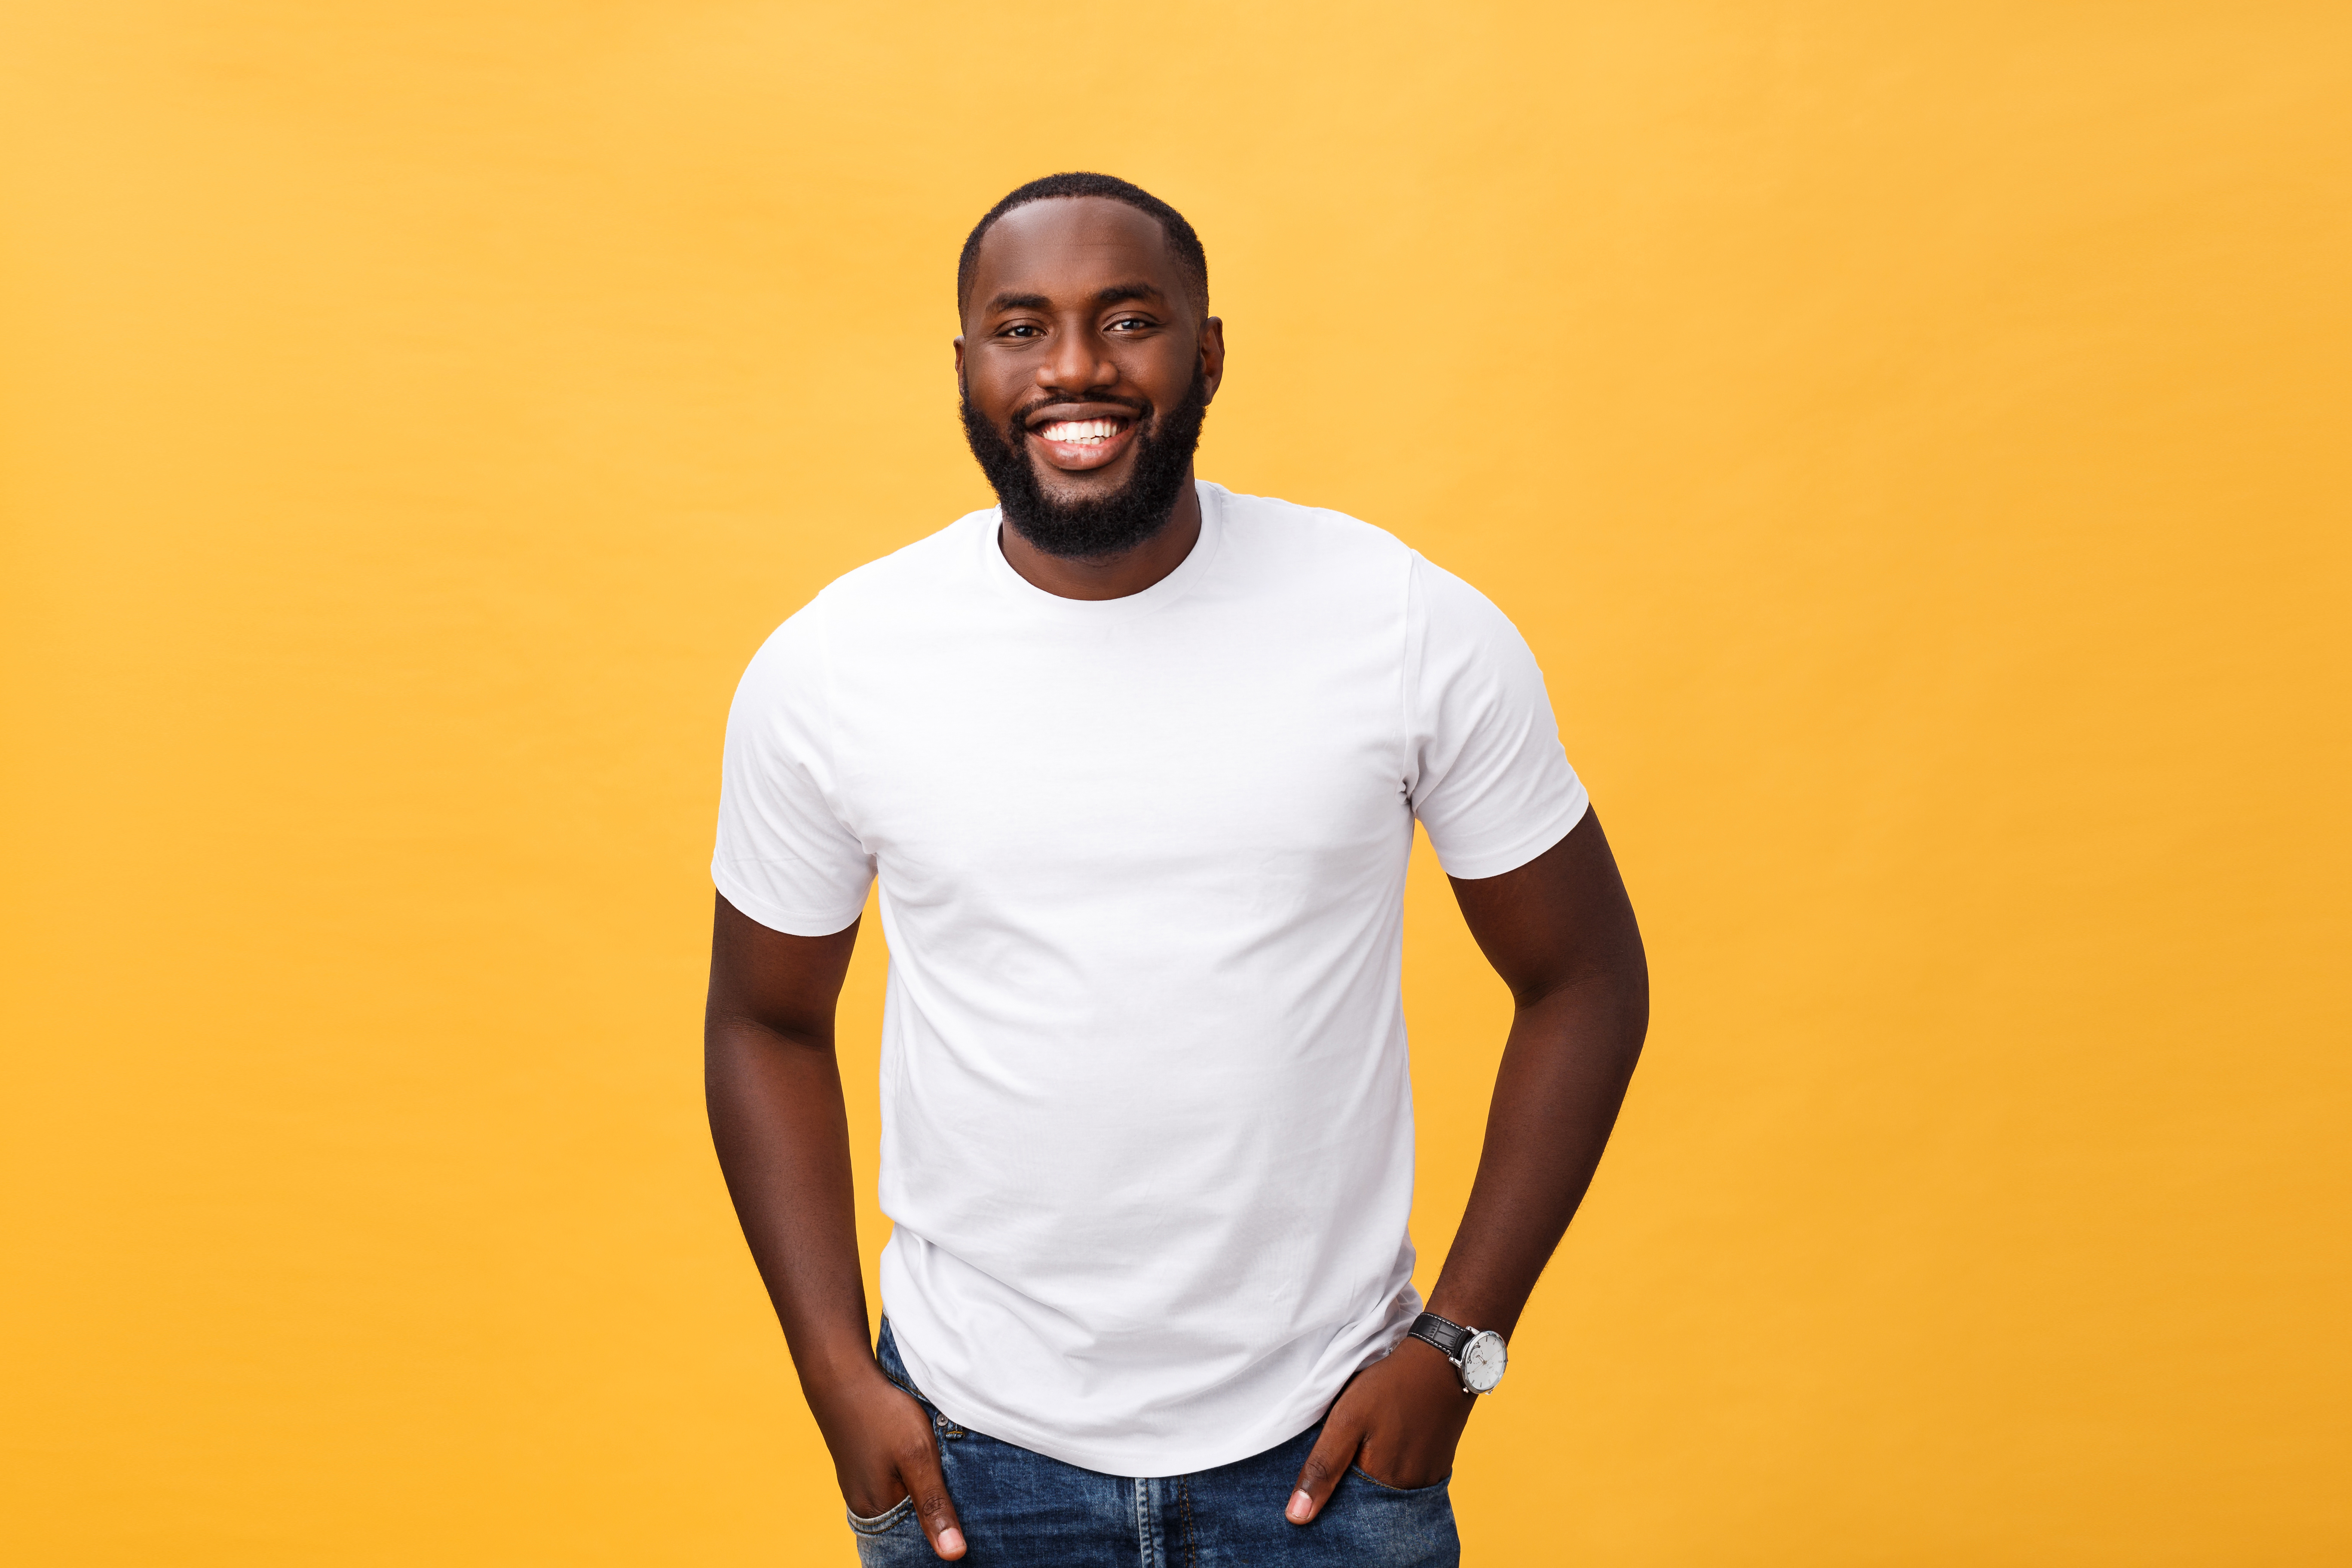 Portrait of delighted African American male with positive smile, white perfect teeth, looks happily at camera, being successful enterpreneur, wears white t shirt